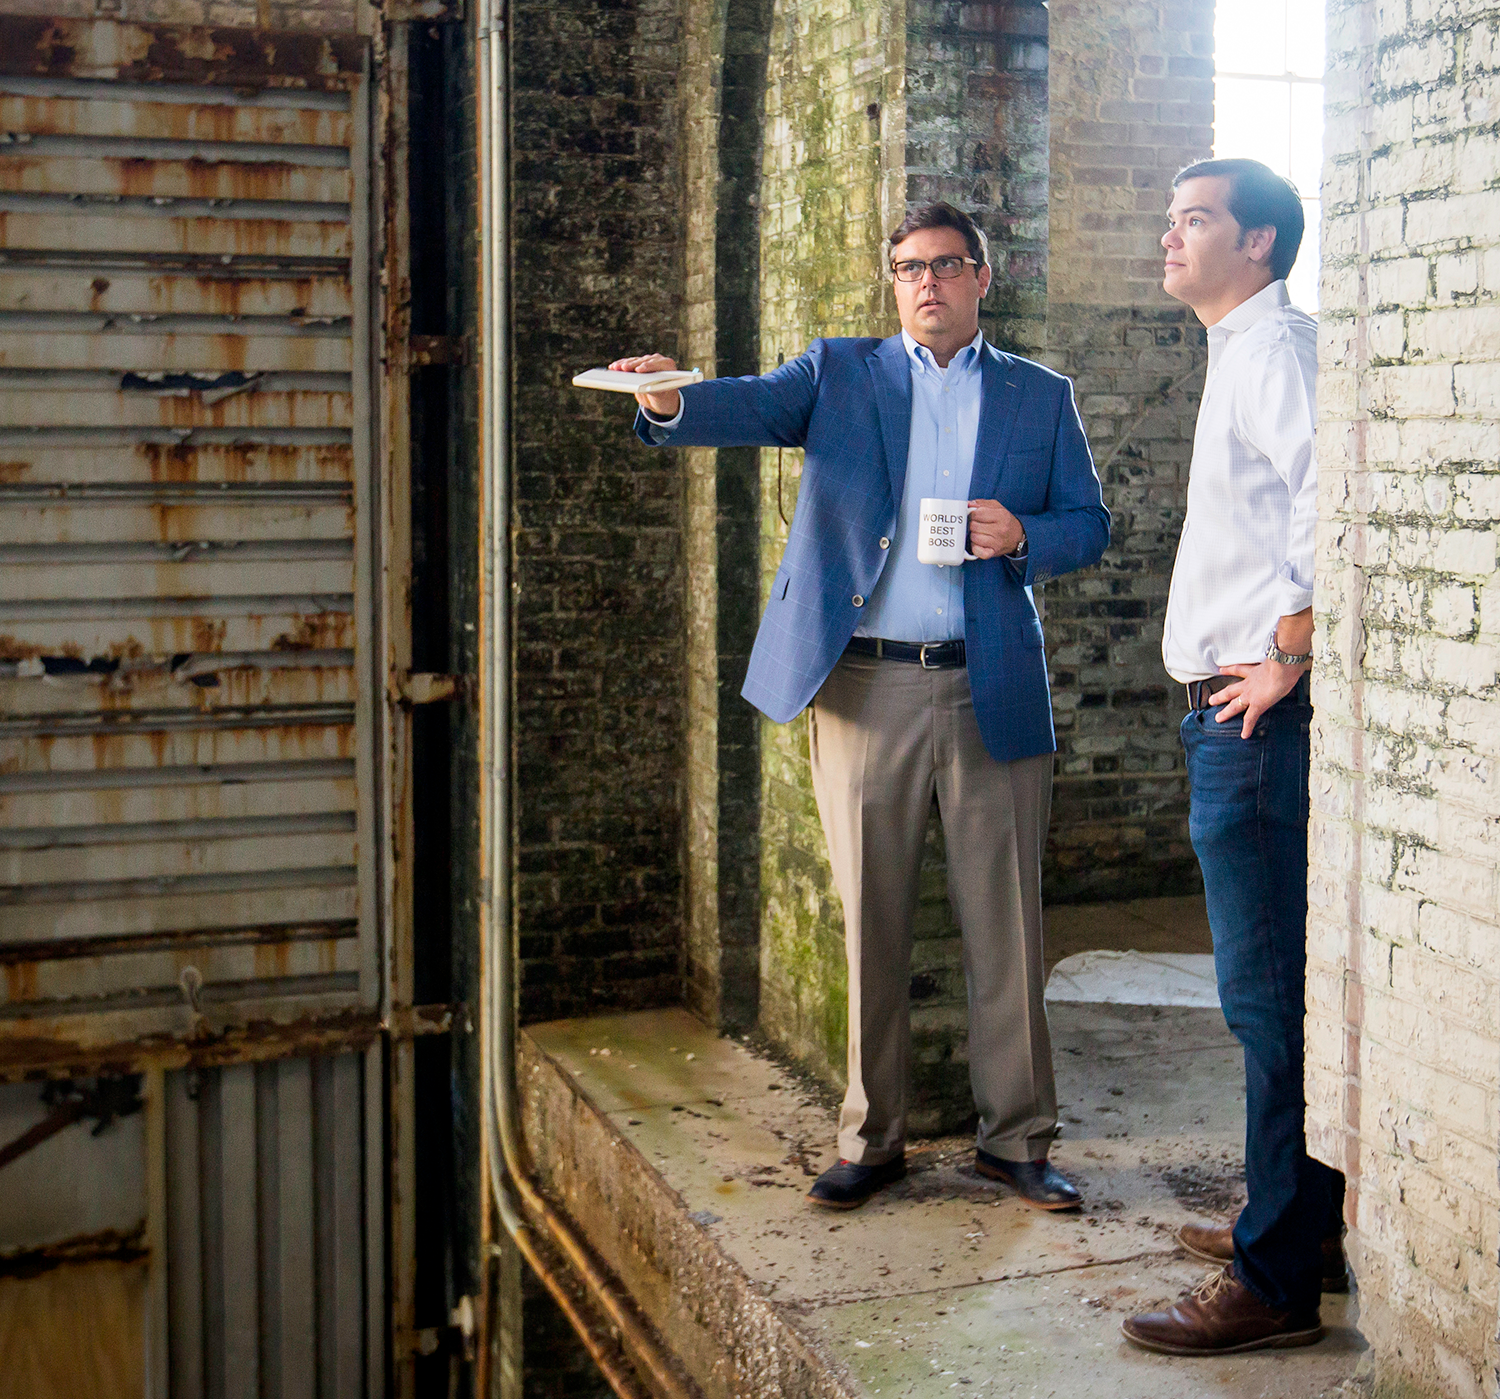 Architect Dyke Nelson, left, and DNA Workshop staff member Abe Kinney inspect the old Entergy building site on Government Street.